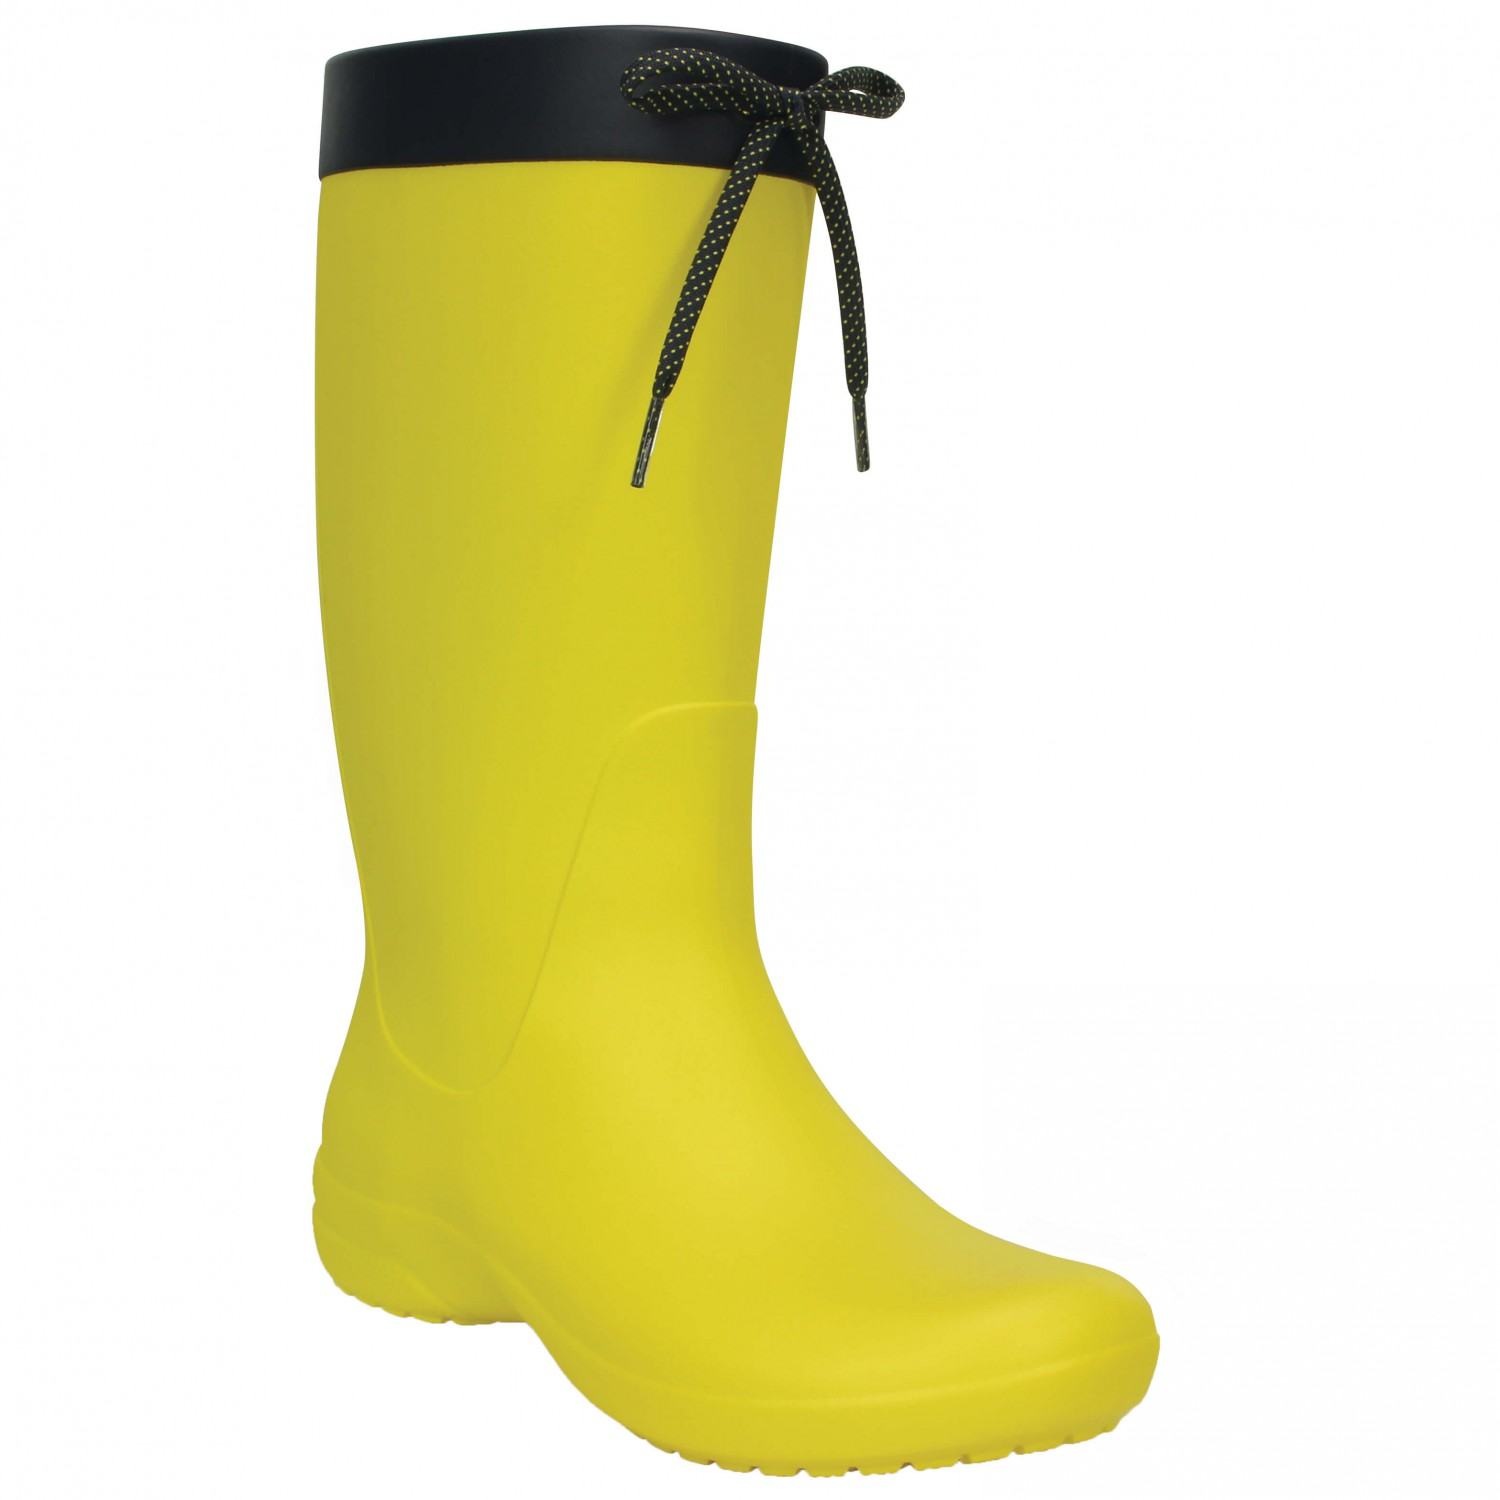 b26b954a1e10 Crocs - Women s Crocs Freesail Rain Boot - Wellington boots